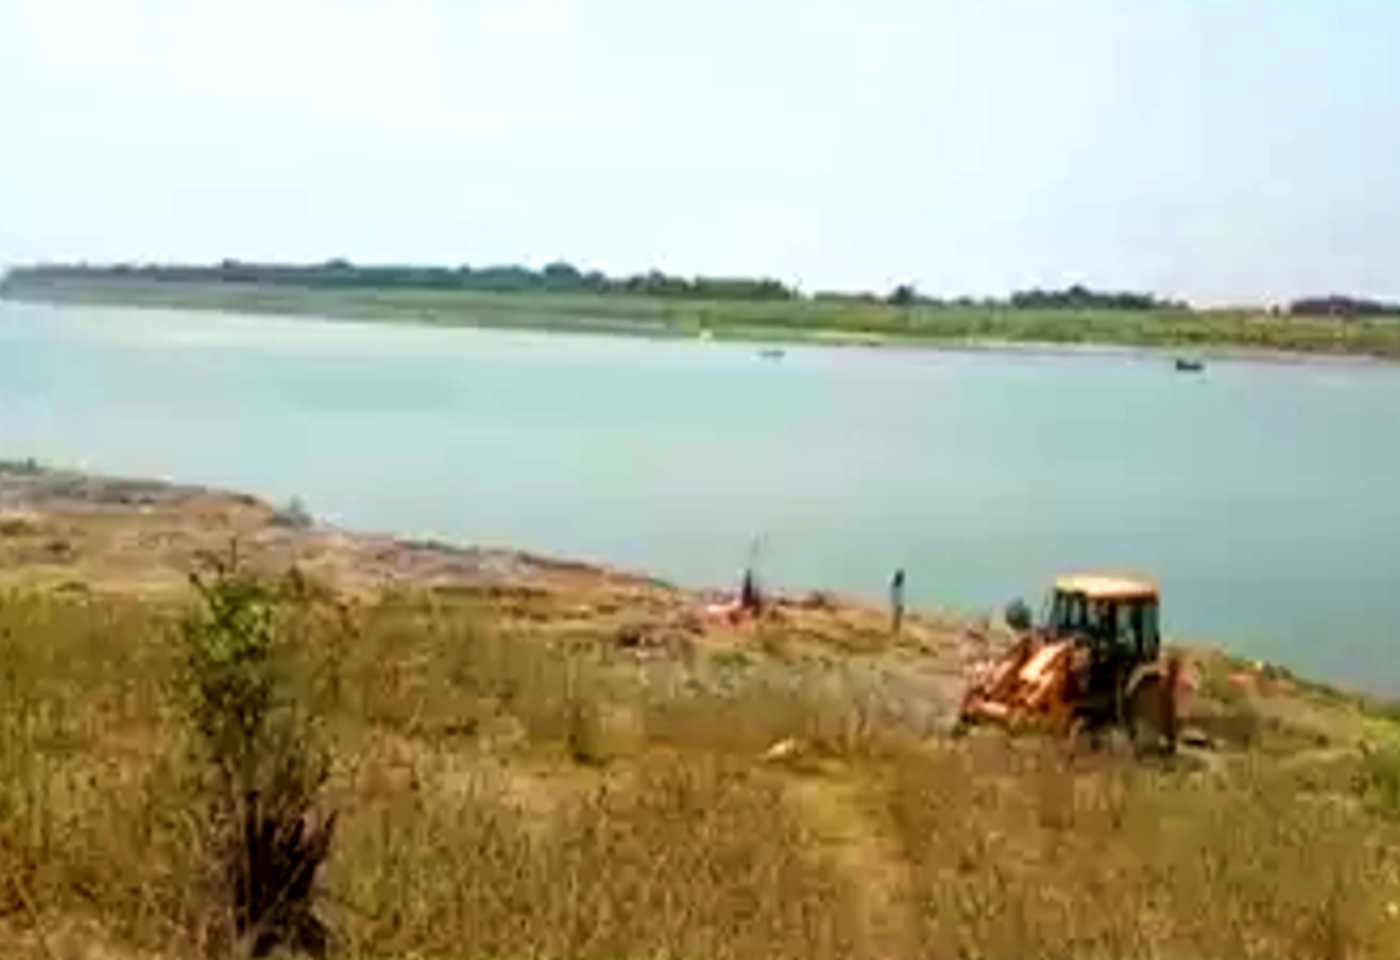 40 to 50 Dead bodies Float In Ganga River At Buxar, Administration On Alert After Video Viral